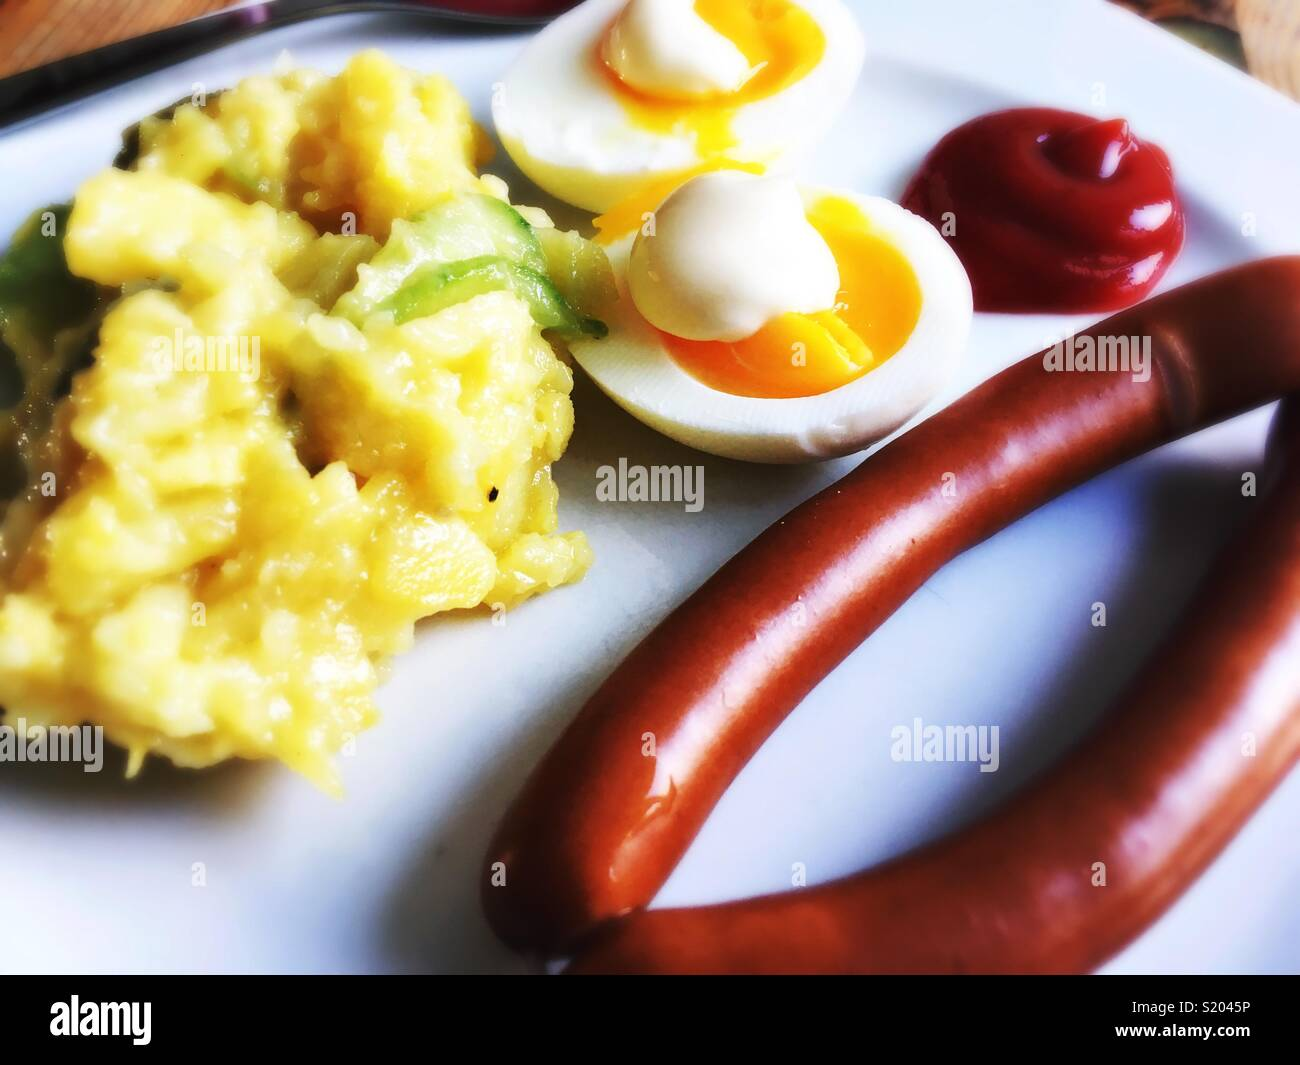 A pair of Vienna sausages, eggs, mayonnaise, potato salad and ketchup on a white plate - Stock Image